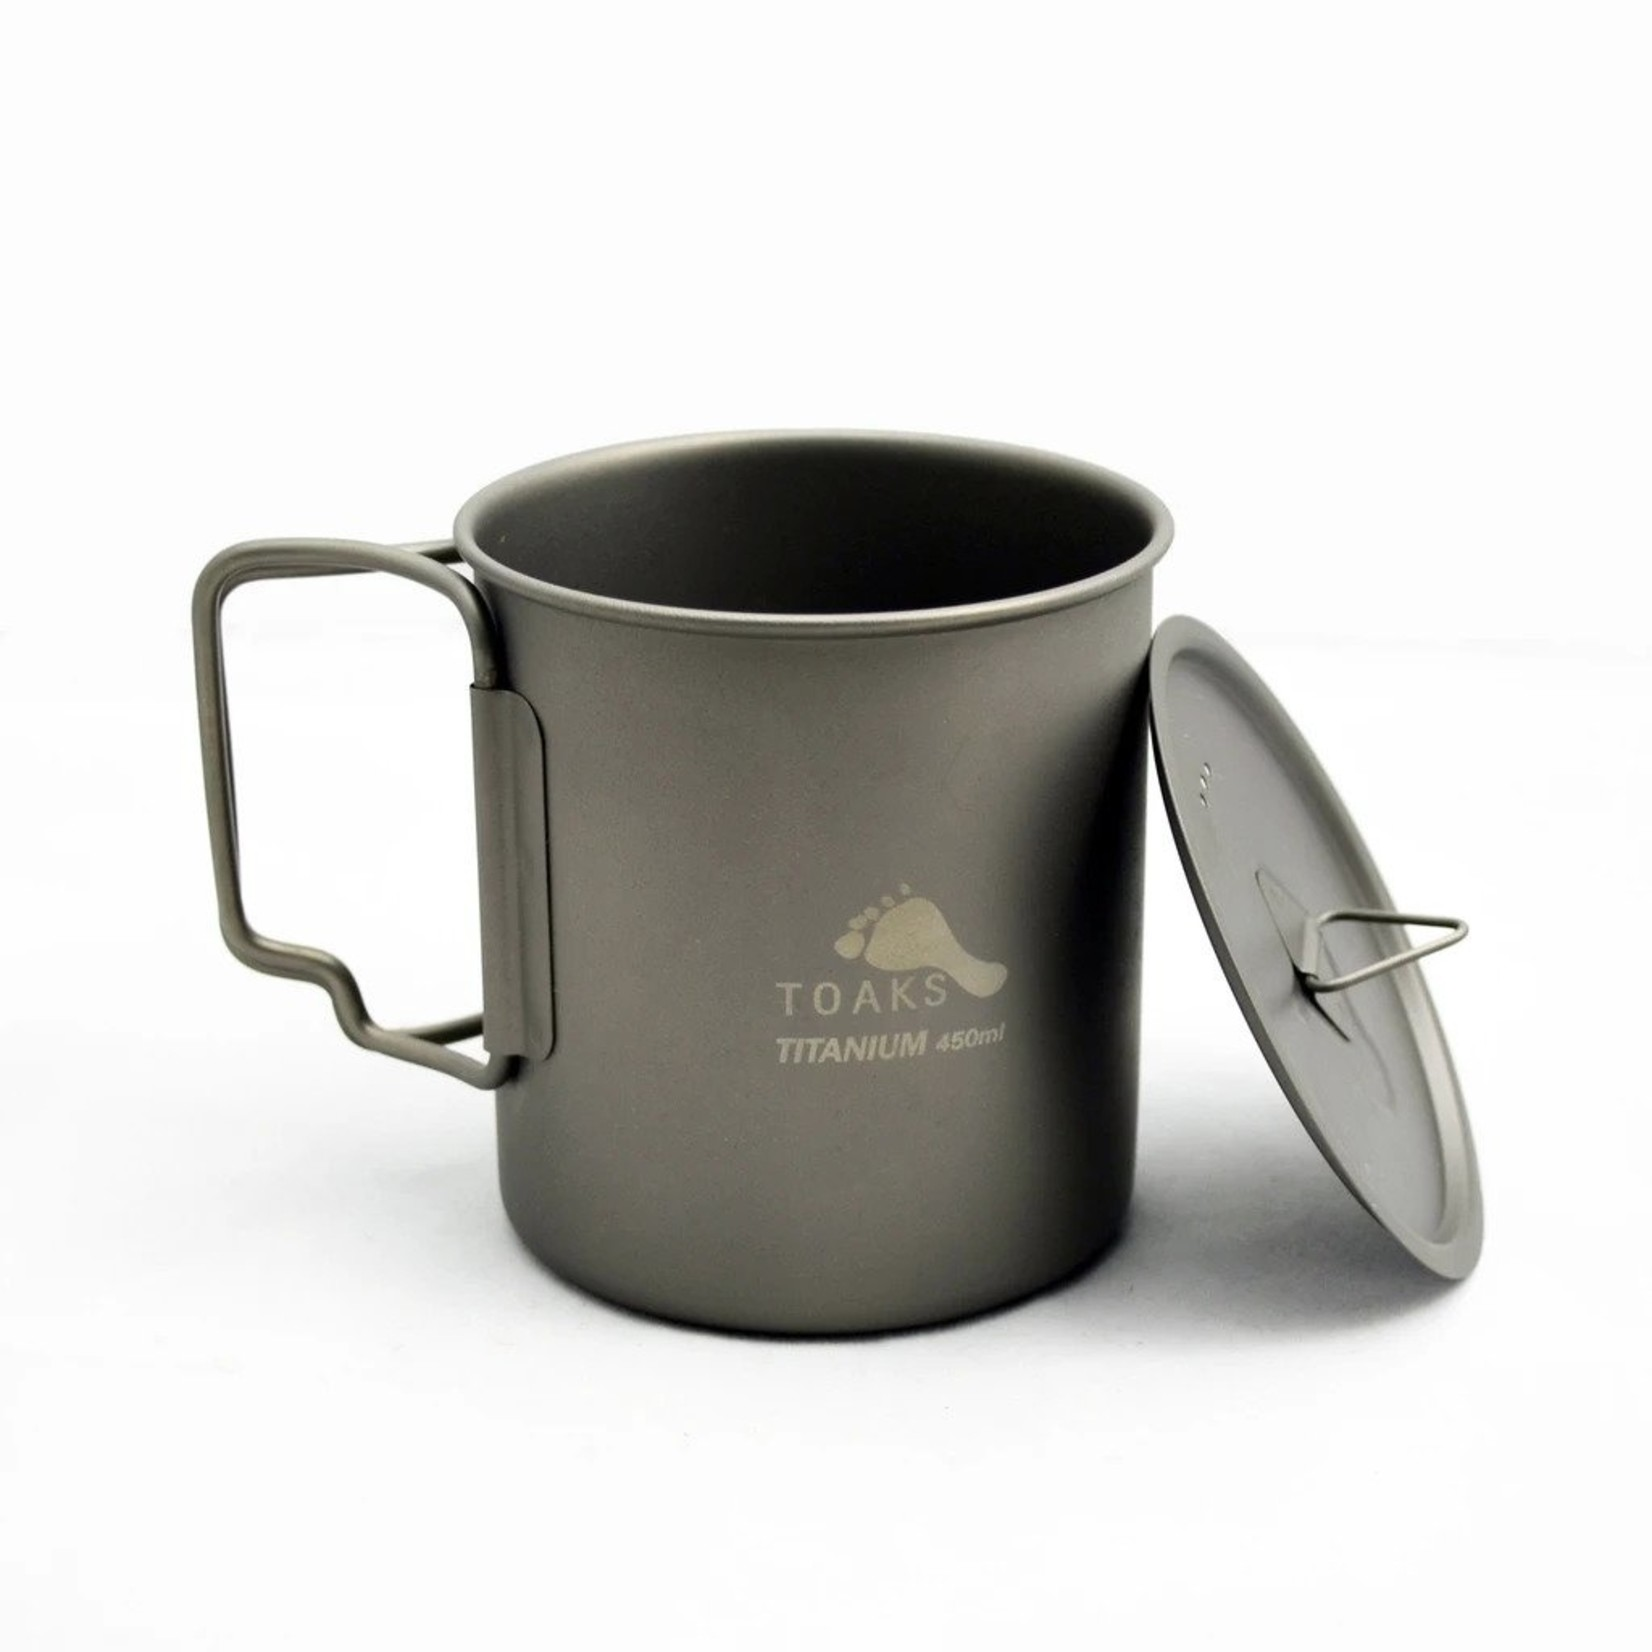 Toaks Toaks, Titanium 450ml Cup with Lid